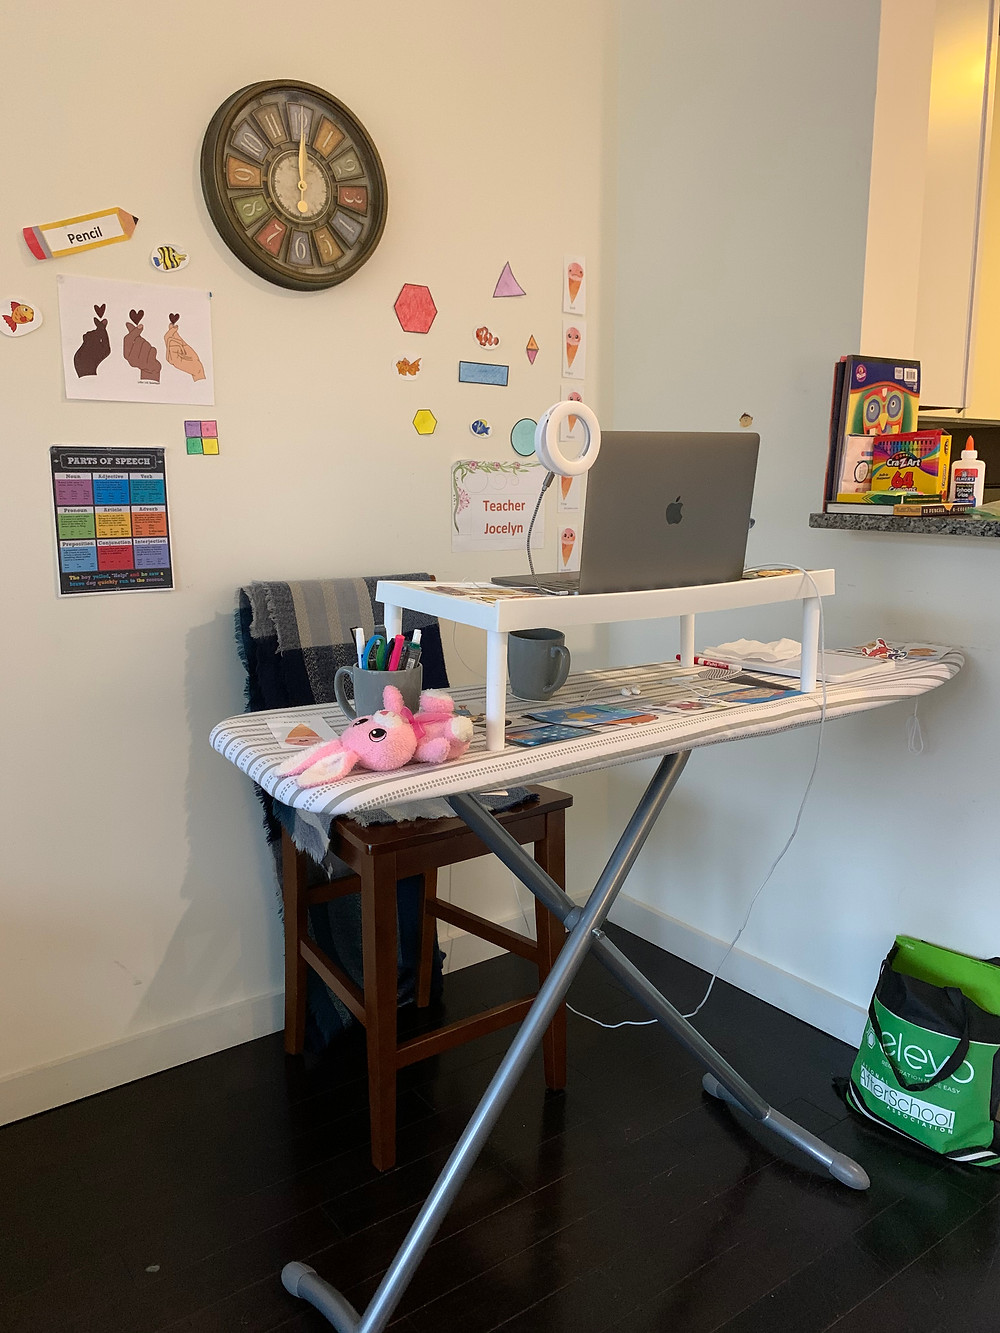 An ironing board is being used as a desk in this image. A white plastic shelf sits on top of the ironing board and holds a mac laptop.